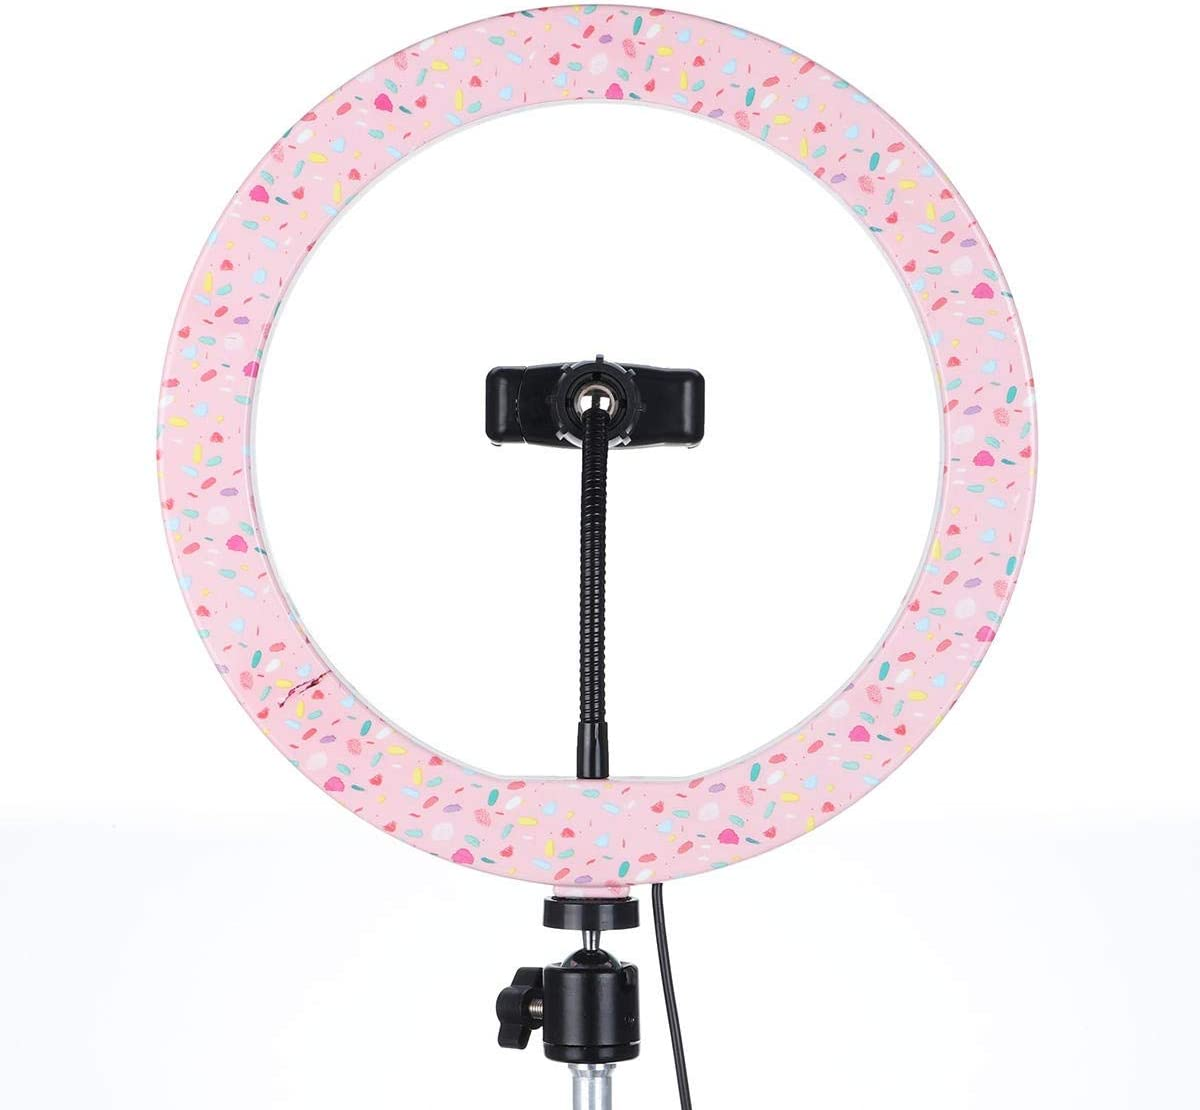 AiKuJia LED Ring Light 10 inch Selfie LED Ring Ring Light for Makeup Live Video Photography Makeup Mirror Light Pink Selfie Photography Color : Pink, Size : 26cm